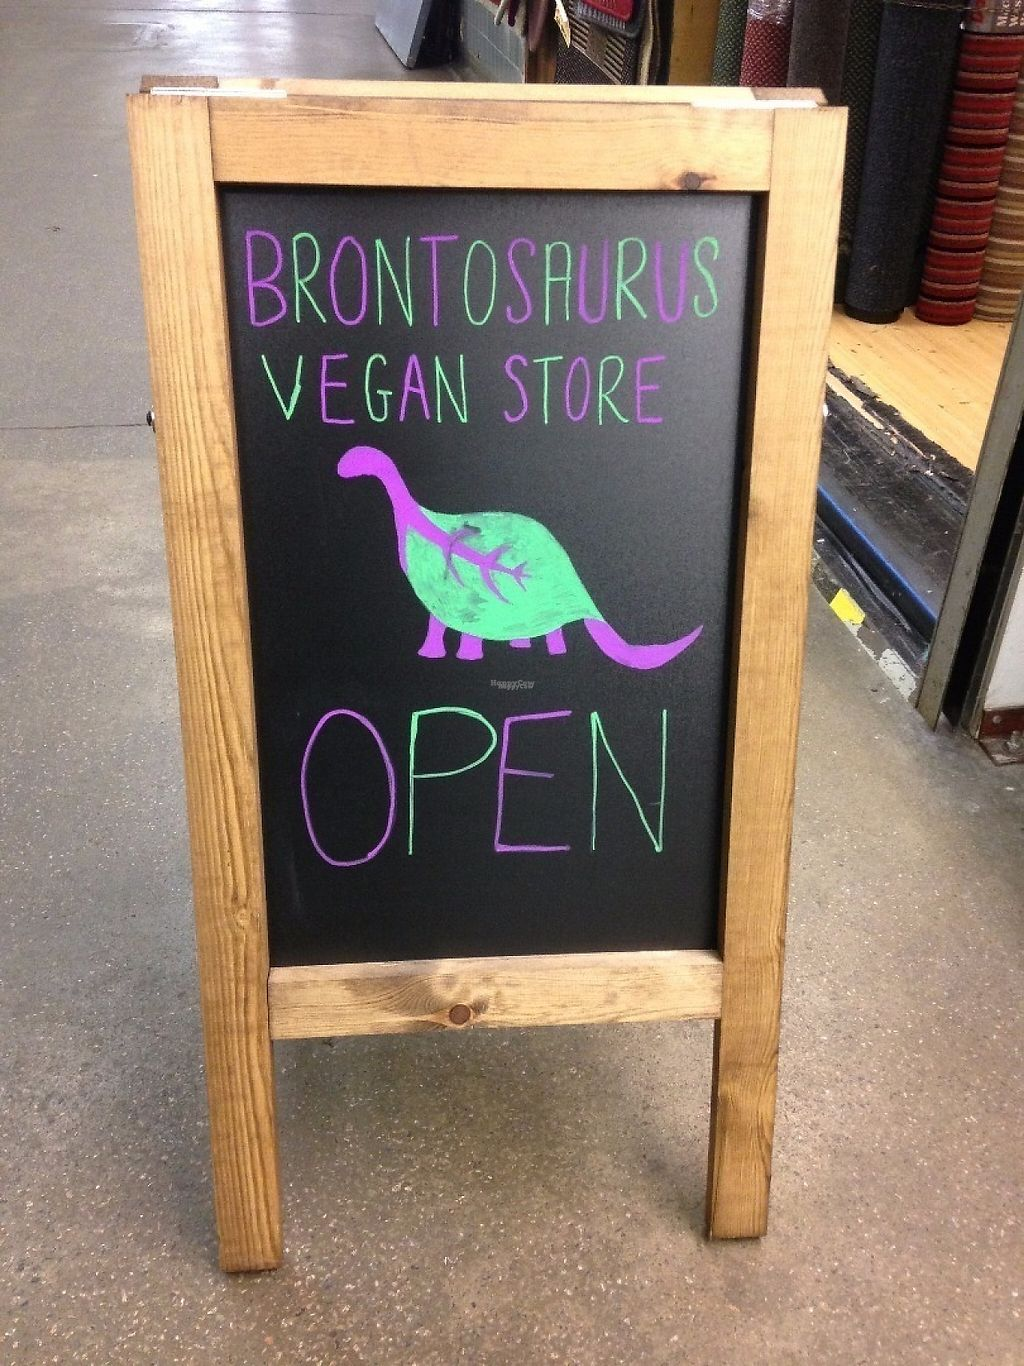 "Photo of Brontosaurus Vegan Lifestyle Store  by <a href=""/members/profile/charclothier"">charclothier</a> <br/>Outside sign <br/> January 31, 2017  - <a href='/contact/abuse/image/83423/220356'>Report</a>"